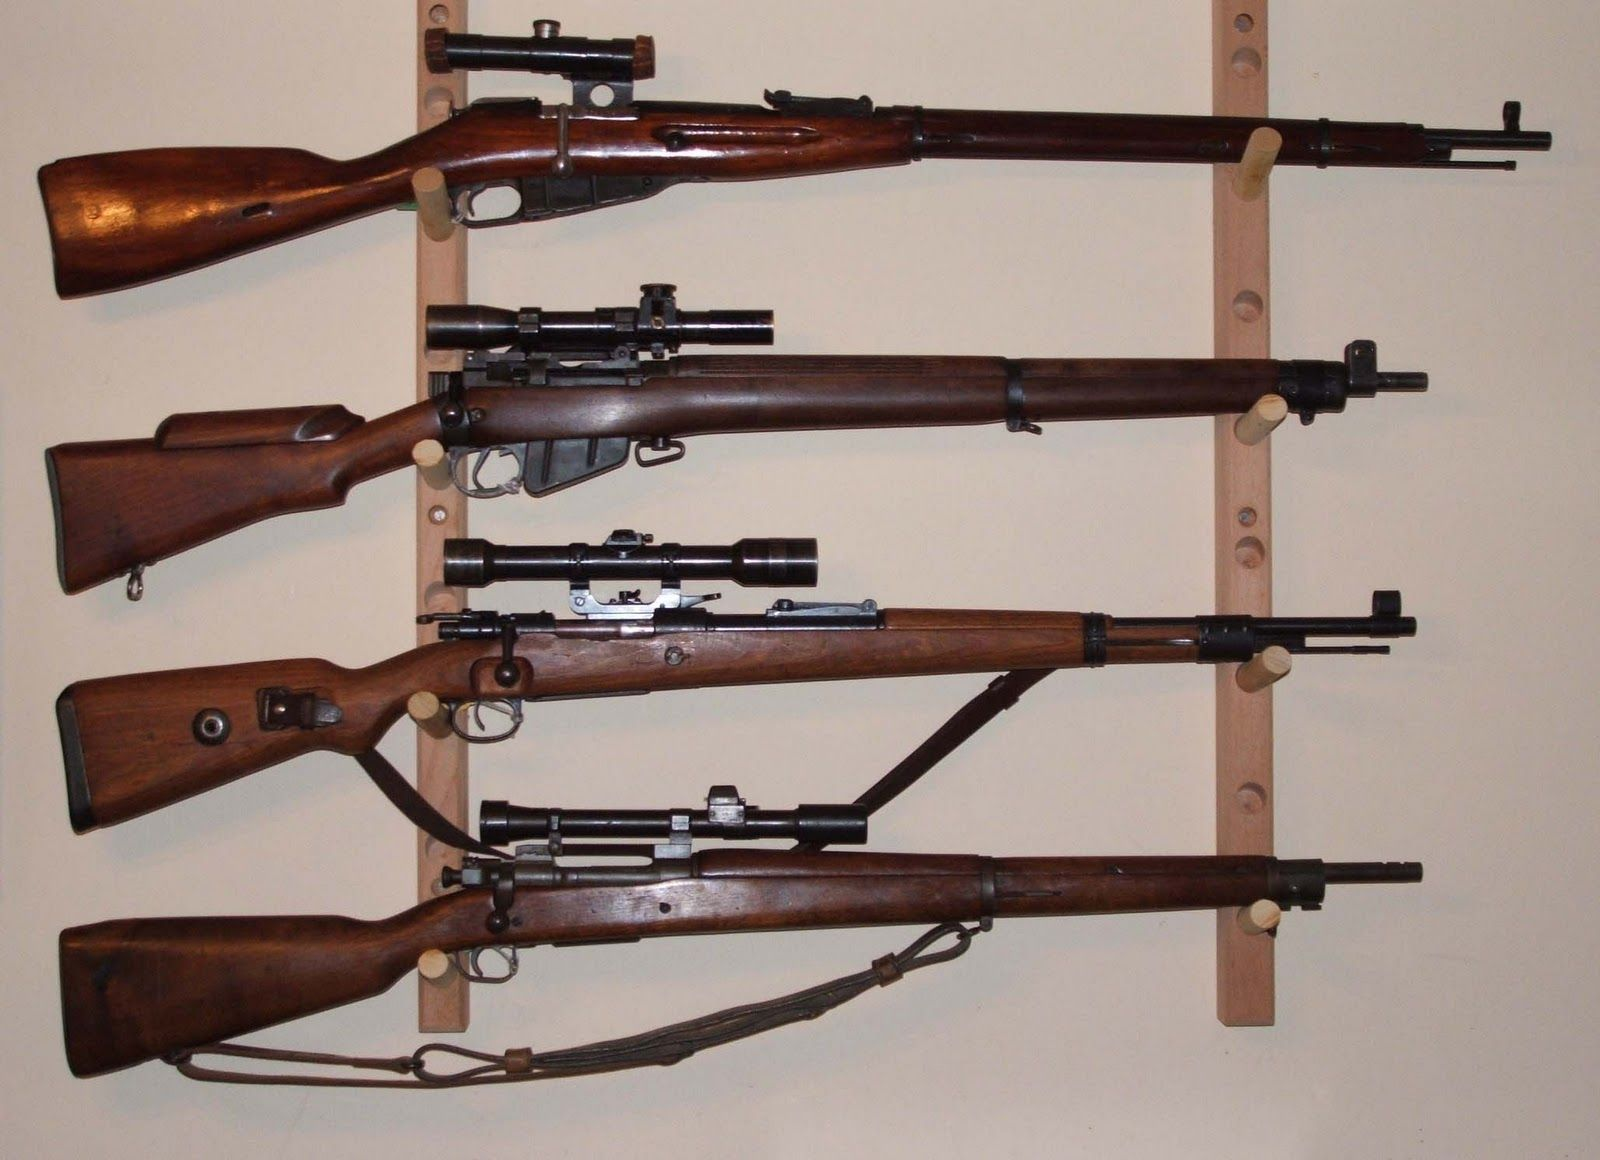 lee enfield lee enfield no 4 based ww2 and l42a1. Black Bedroom Furniture Sets. Home Design Ideas